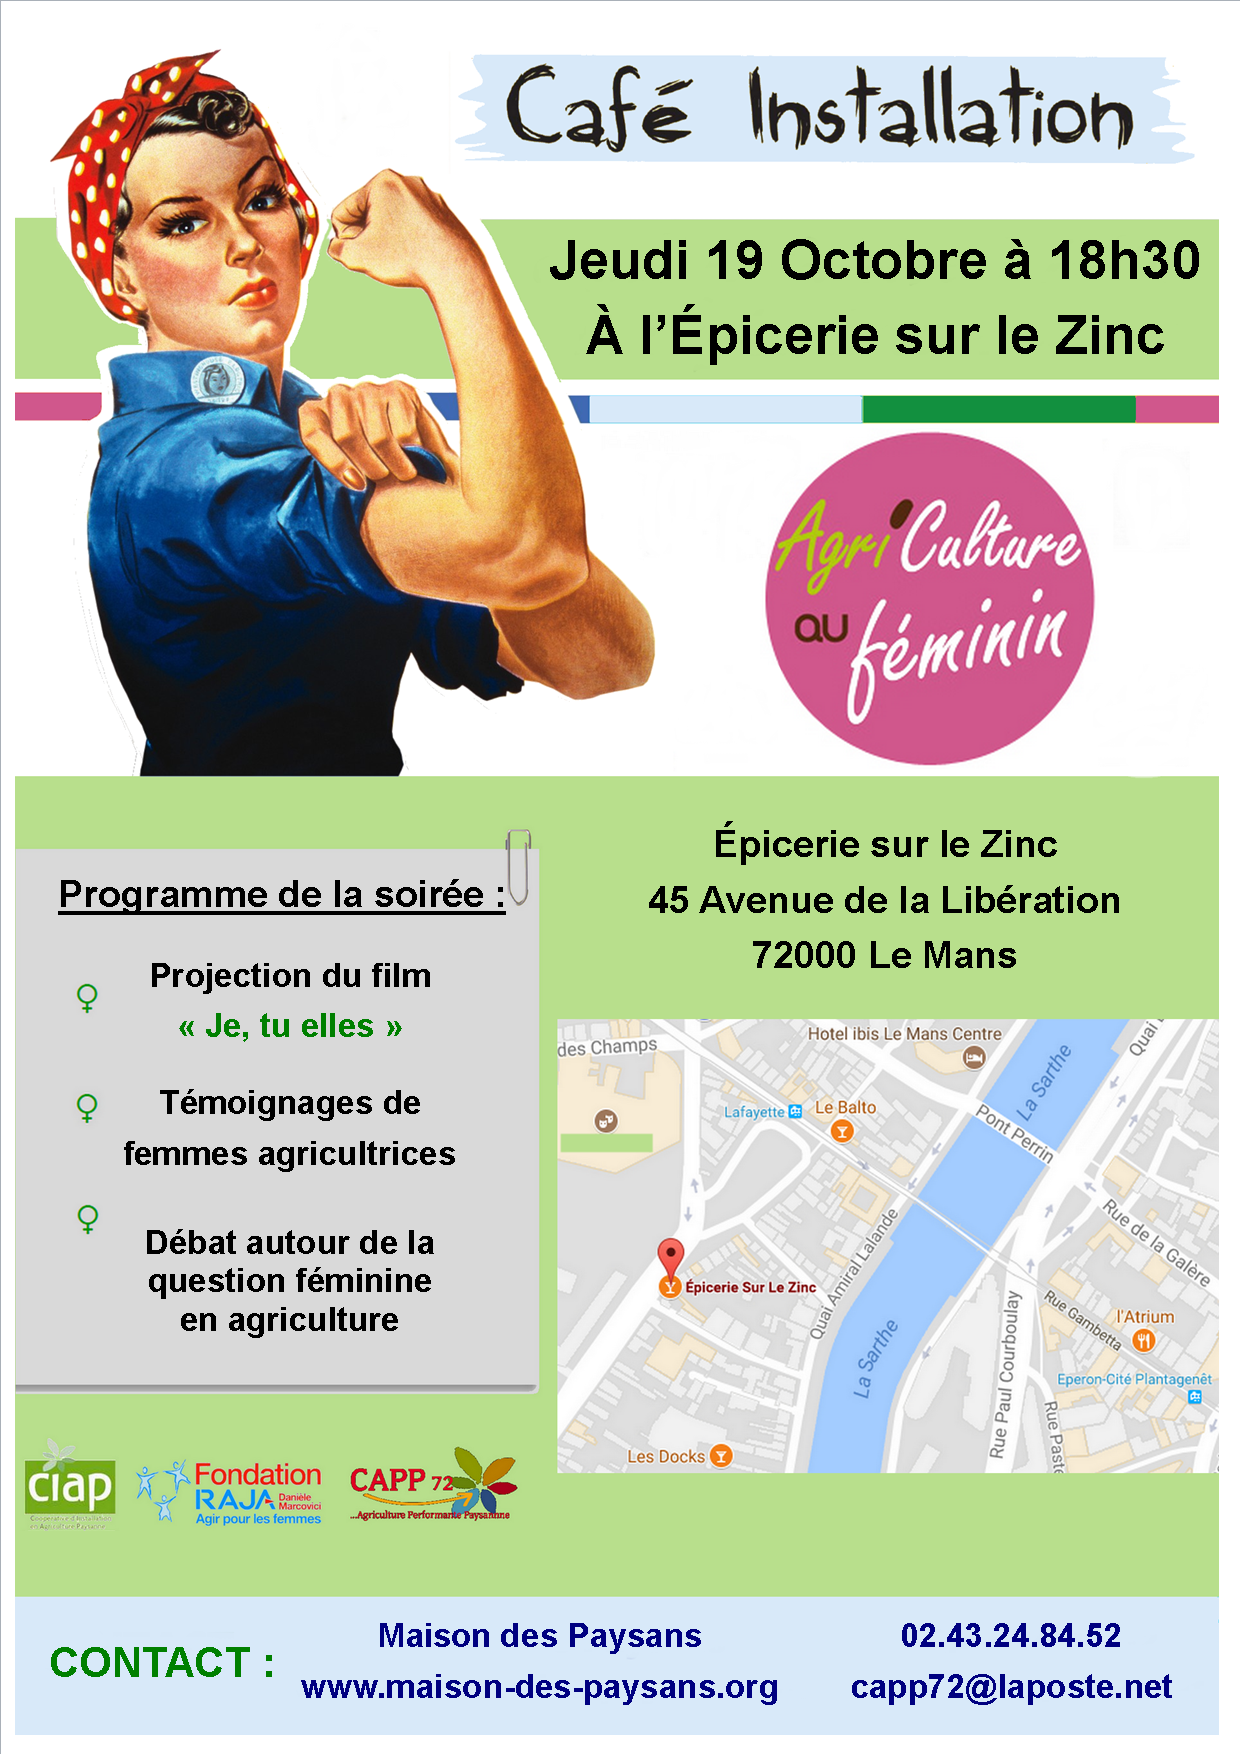 affiche_cafe_installation_raja_arial.png